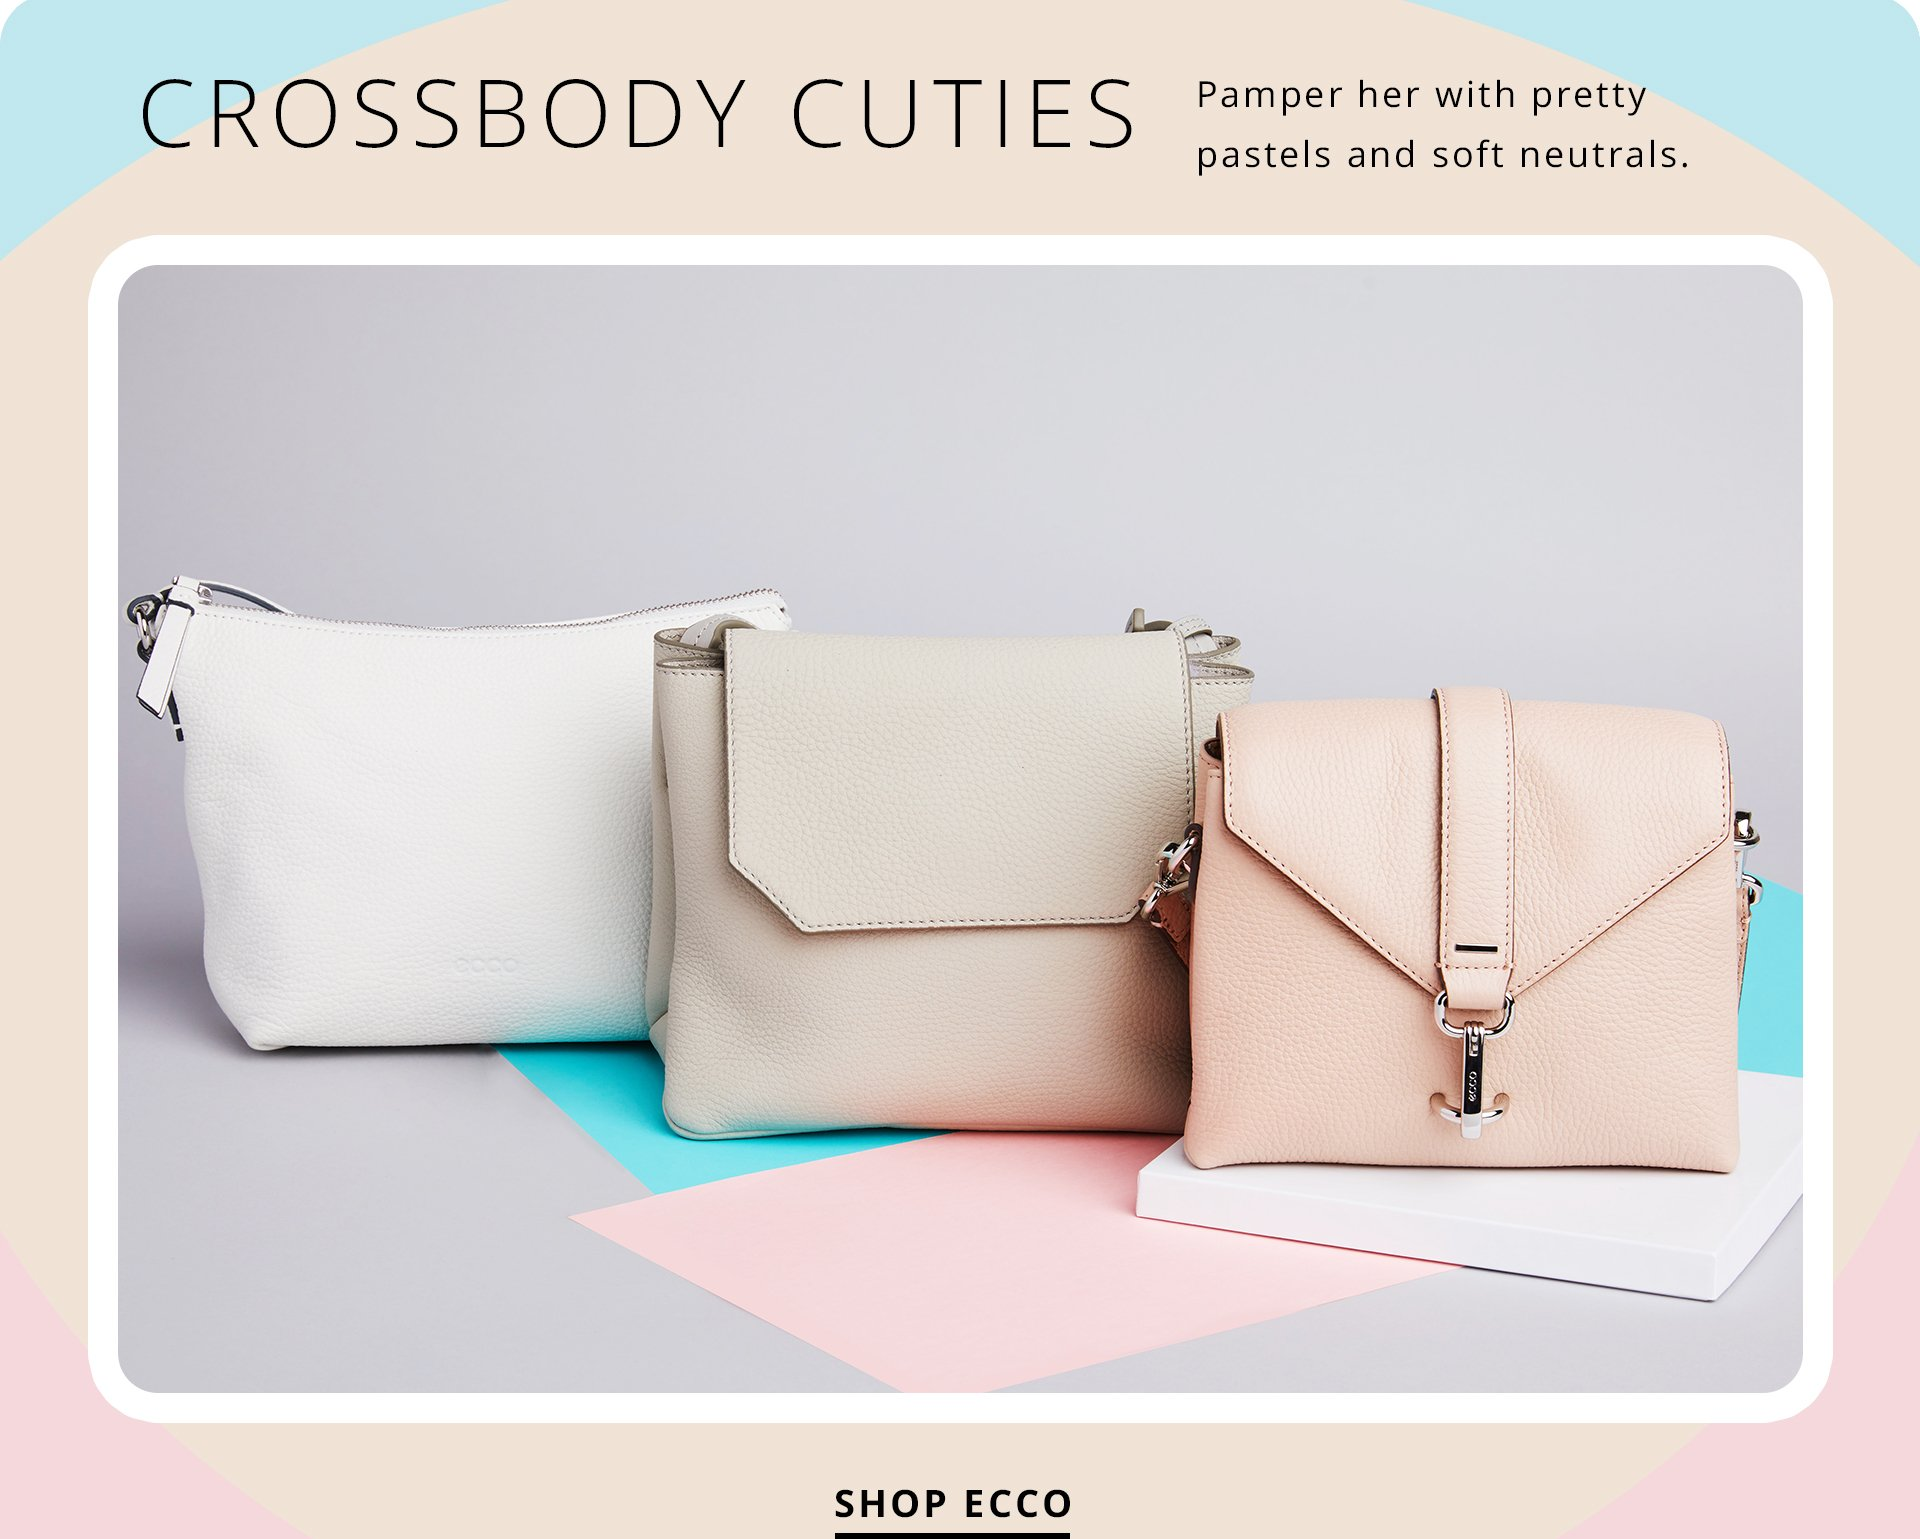 Crossbody cuties. Pamper her with pretty pastels and soft neutrals. Shop Ecco